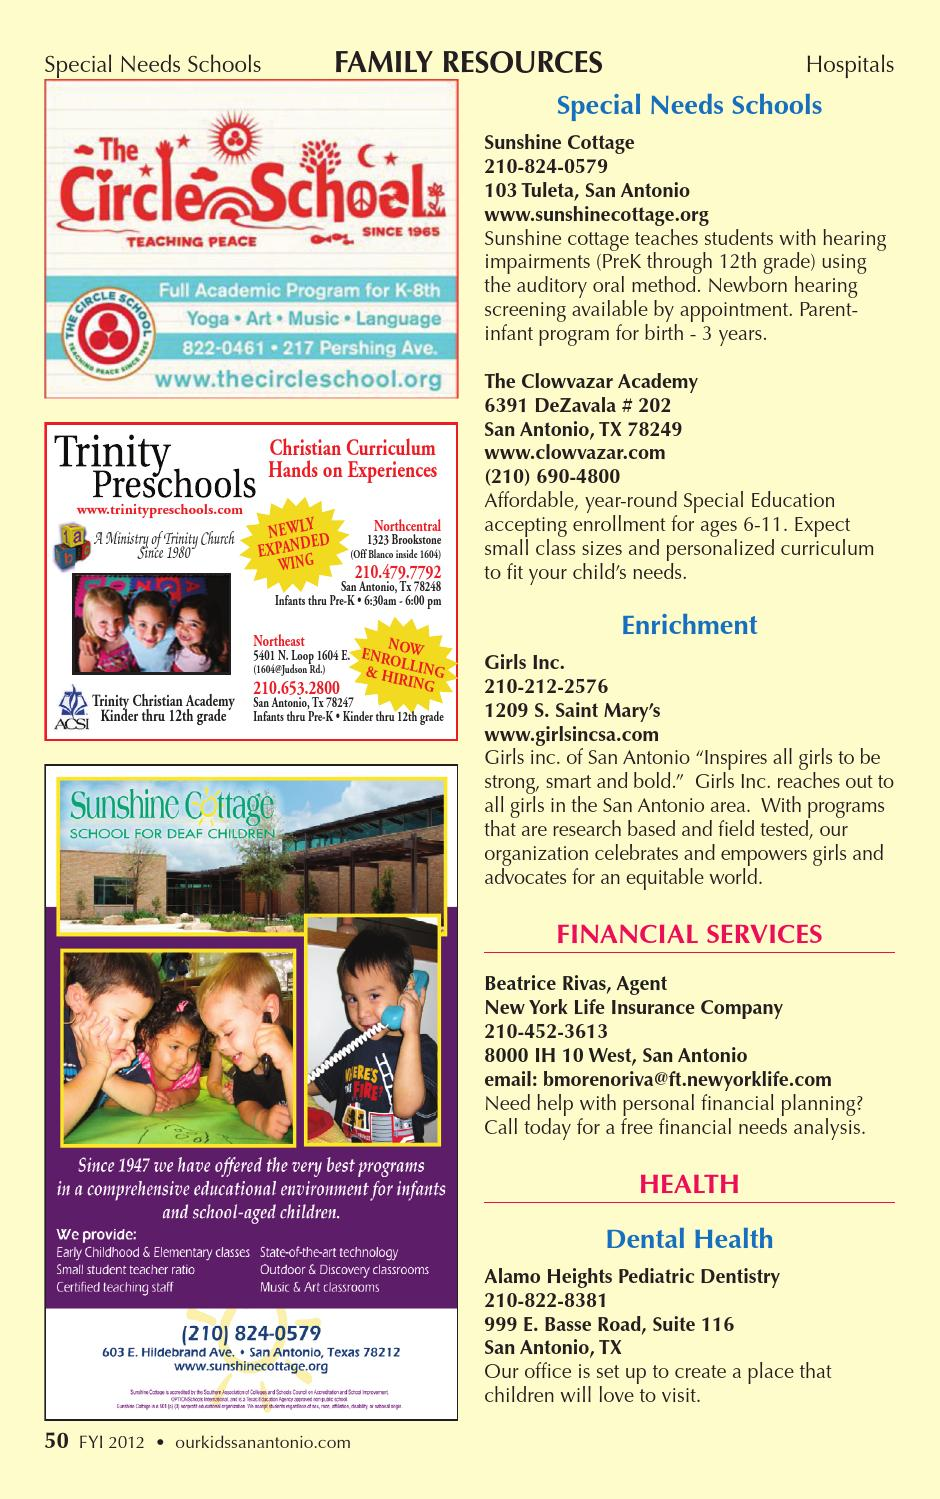 Fyi 2012 by Our Kids Magazine - issuu